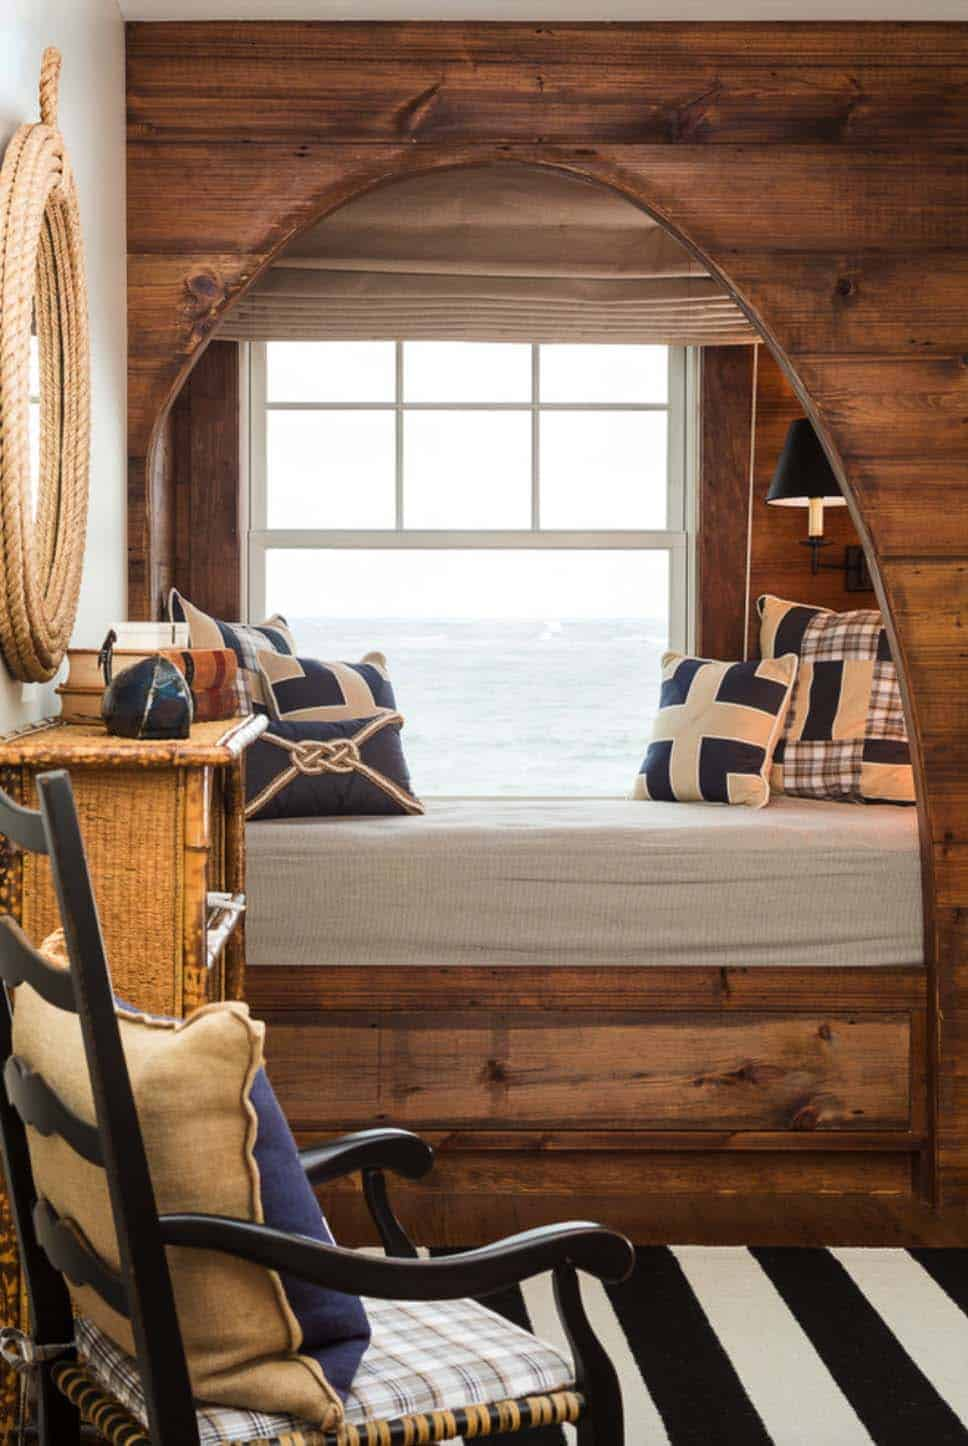 Cozy Reading Nooks For Lounging-01-1 Kindesign